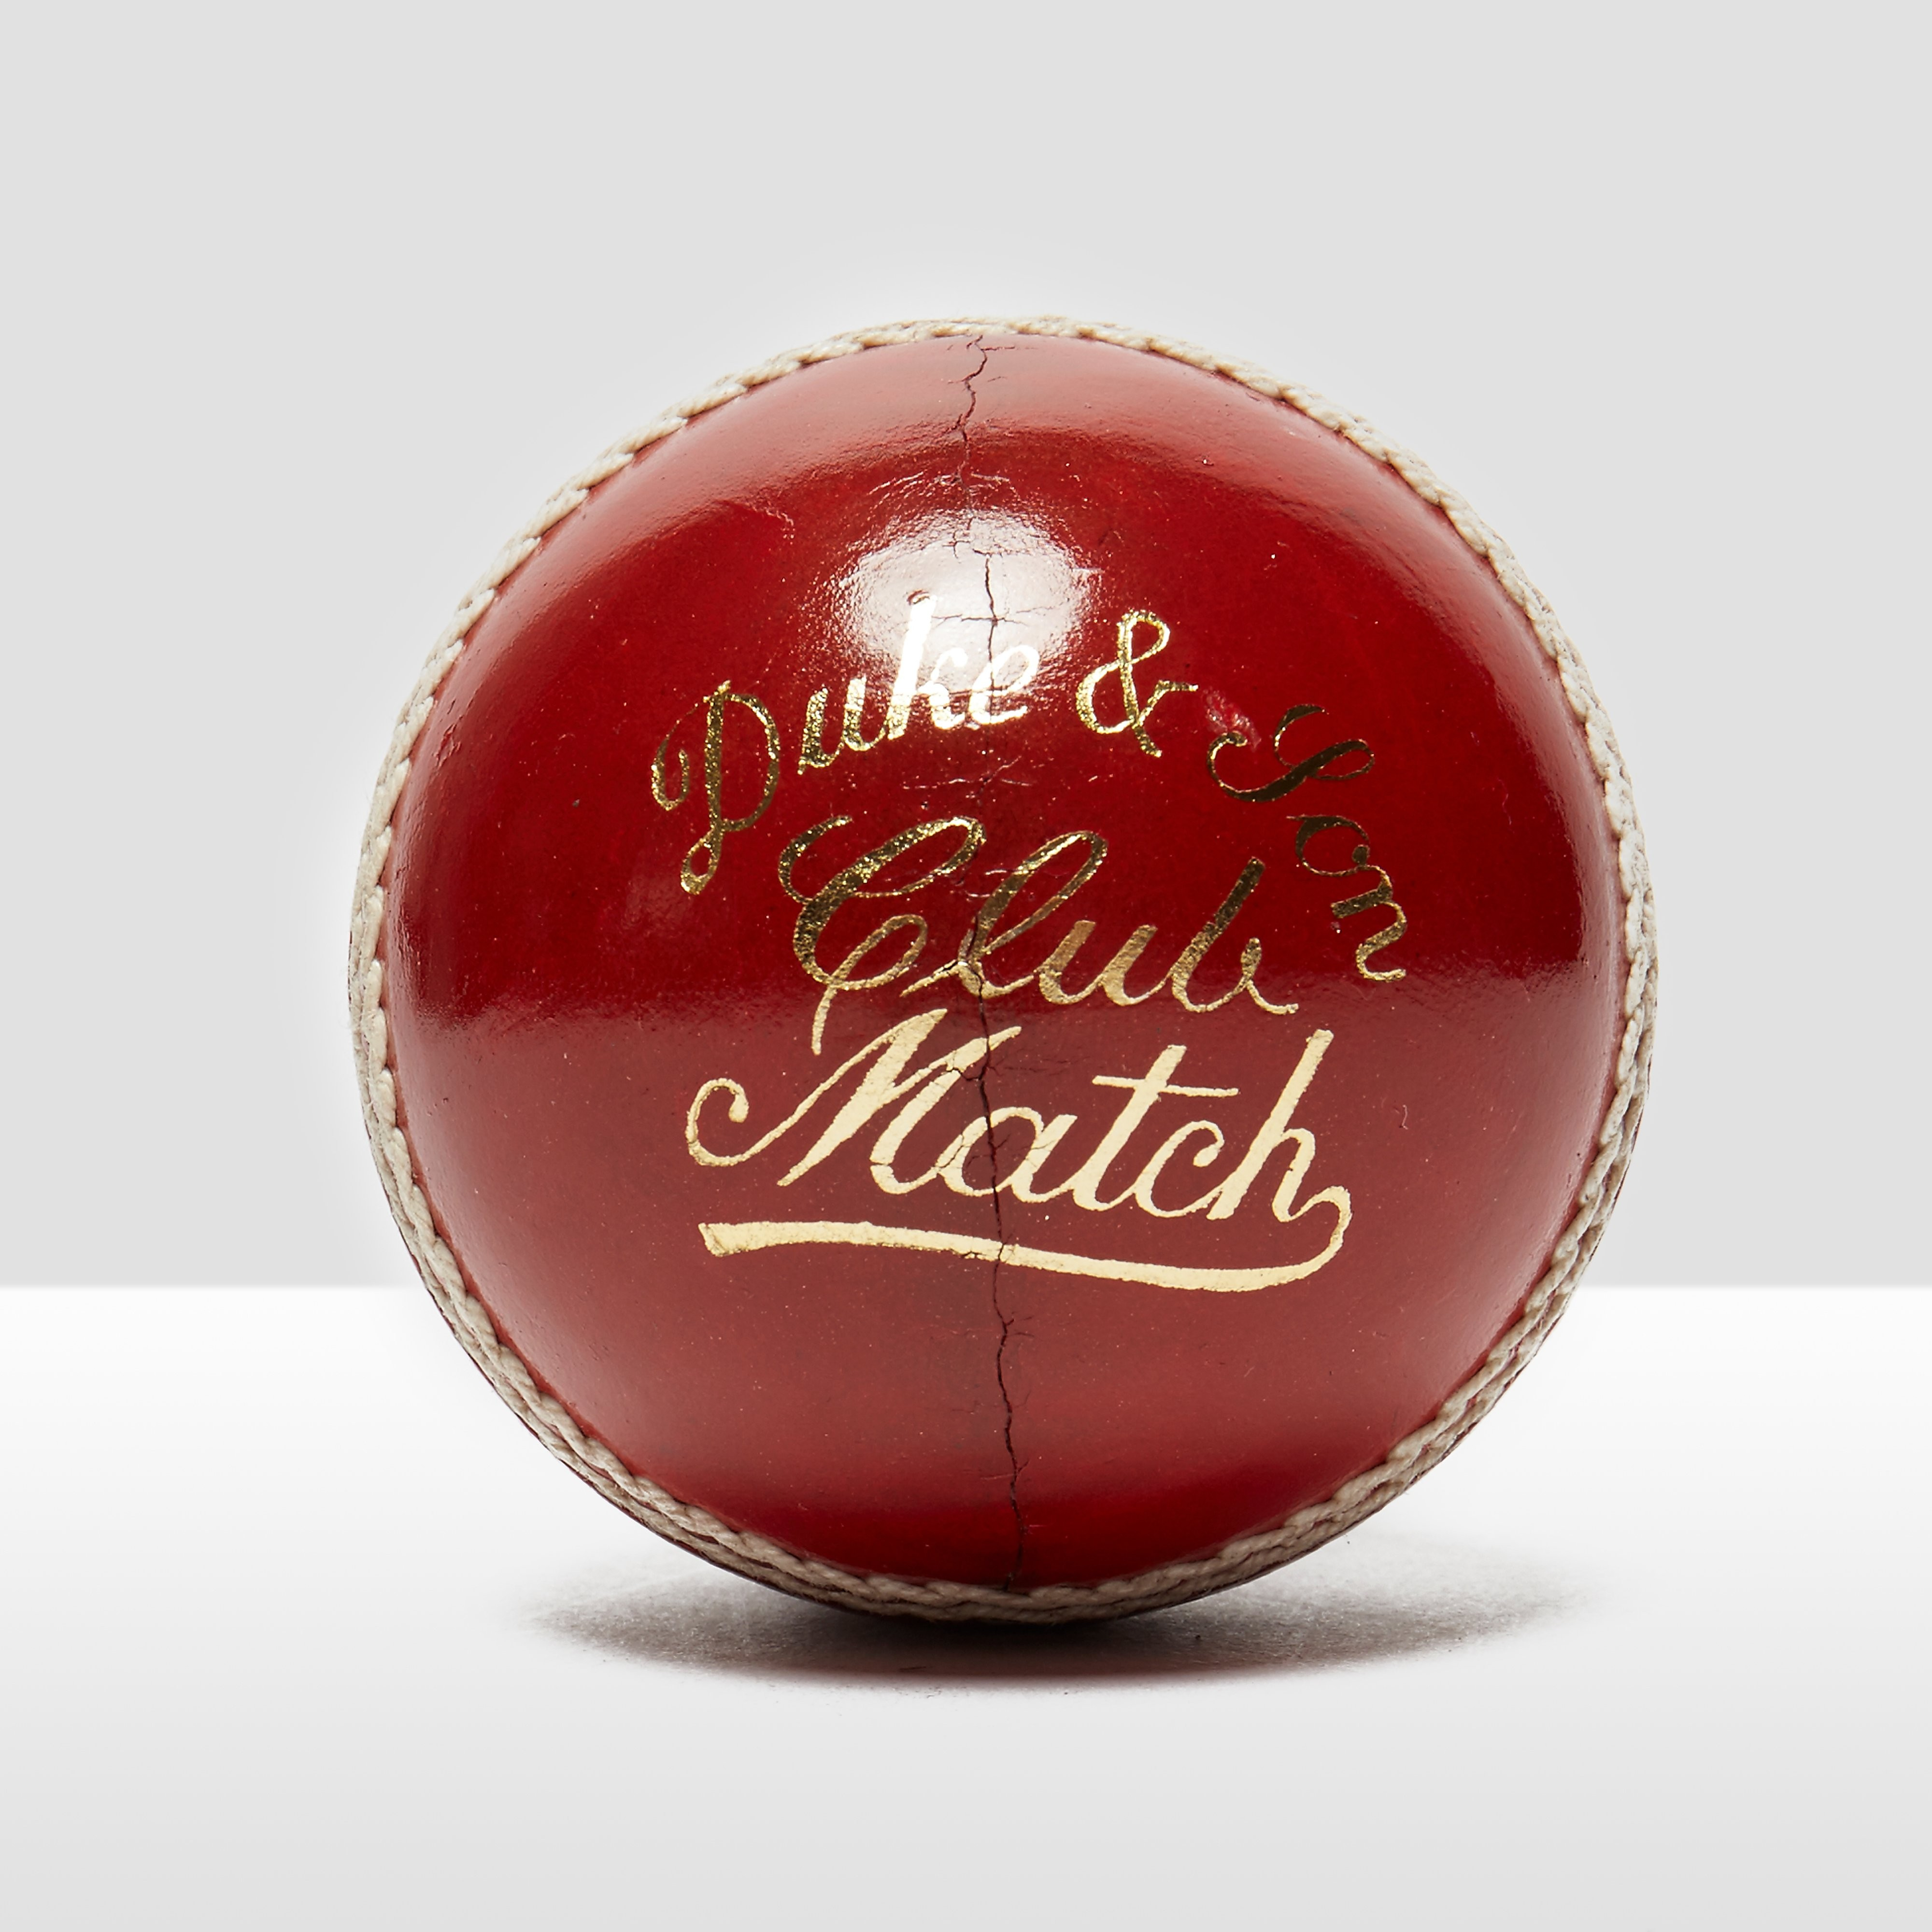 Dukes Club Match Cricket Ball